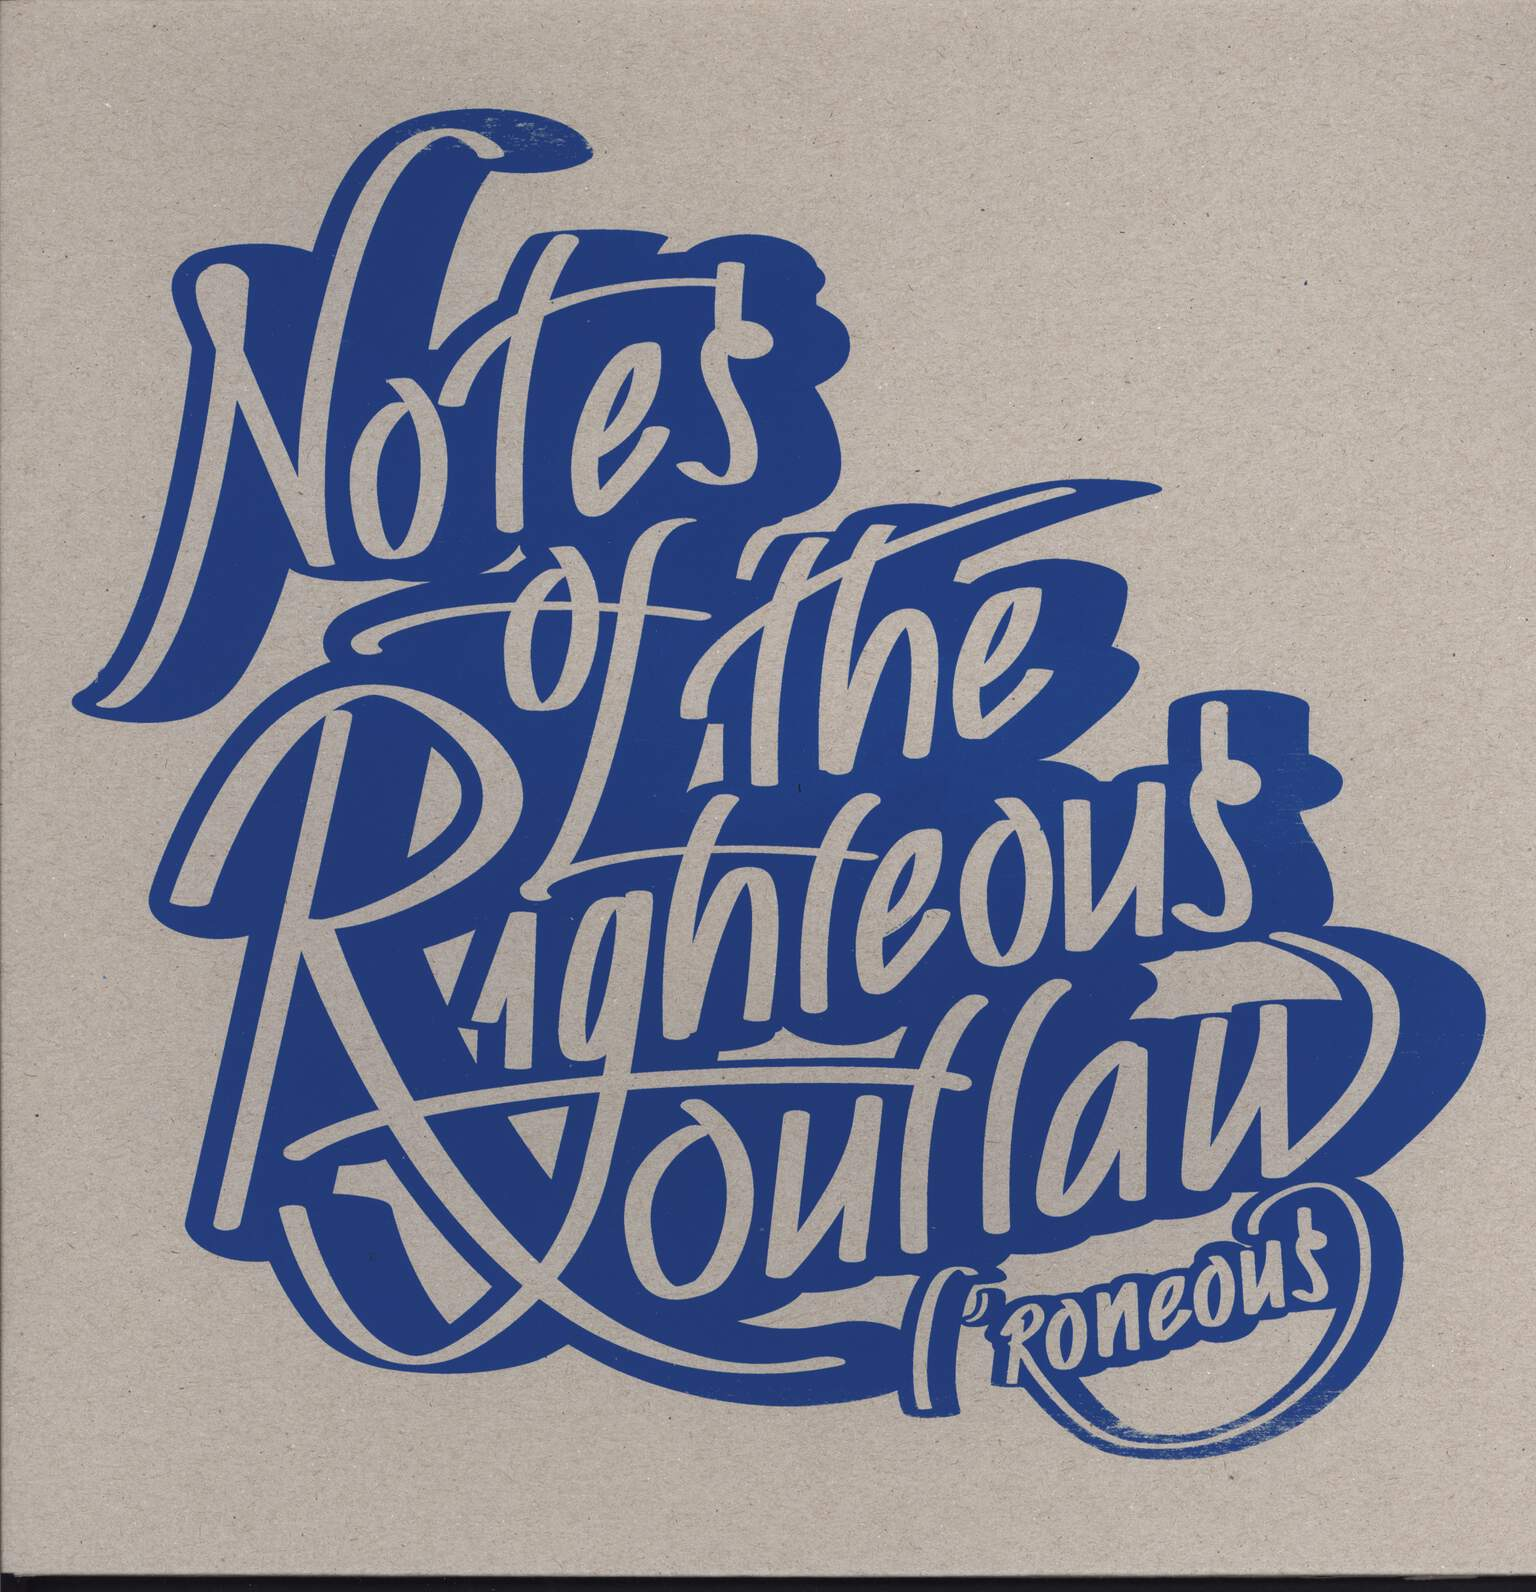 L*Roneous: Notes Of The Righteous Outlaw, LP (Vinyl)